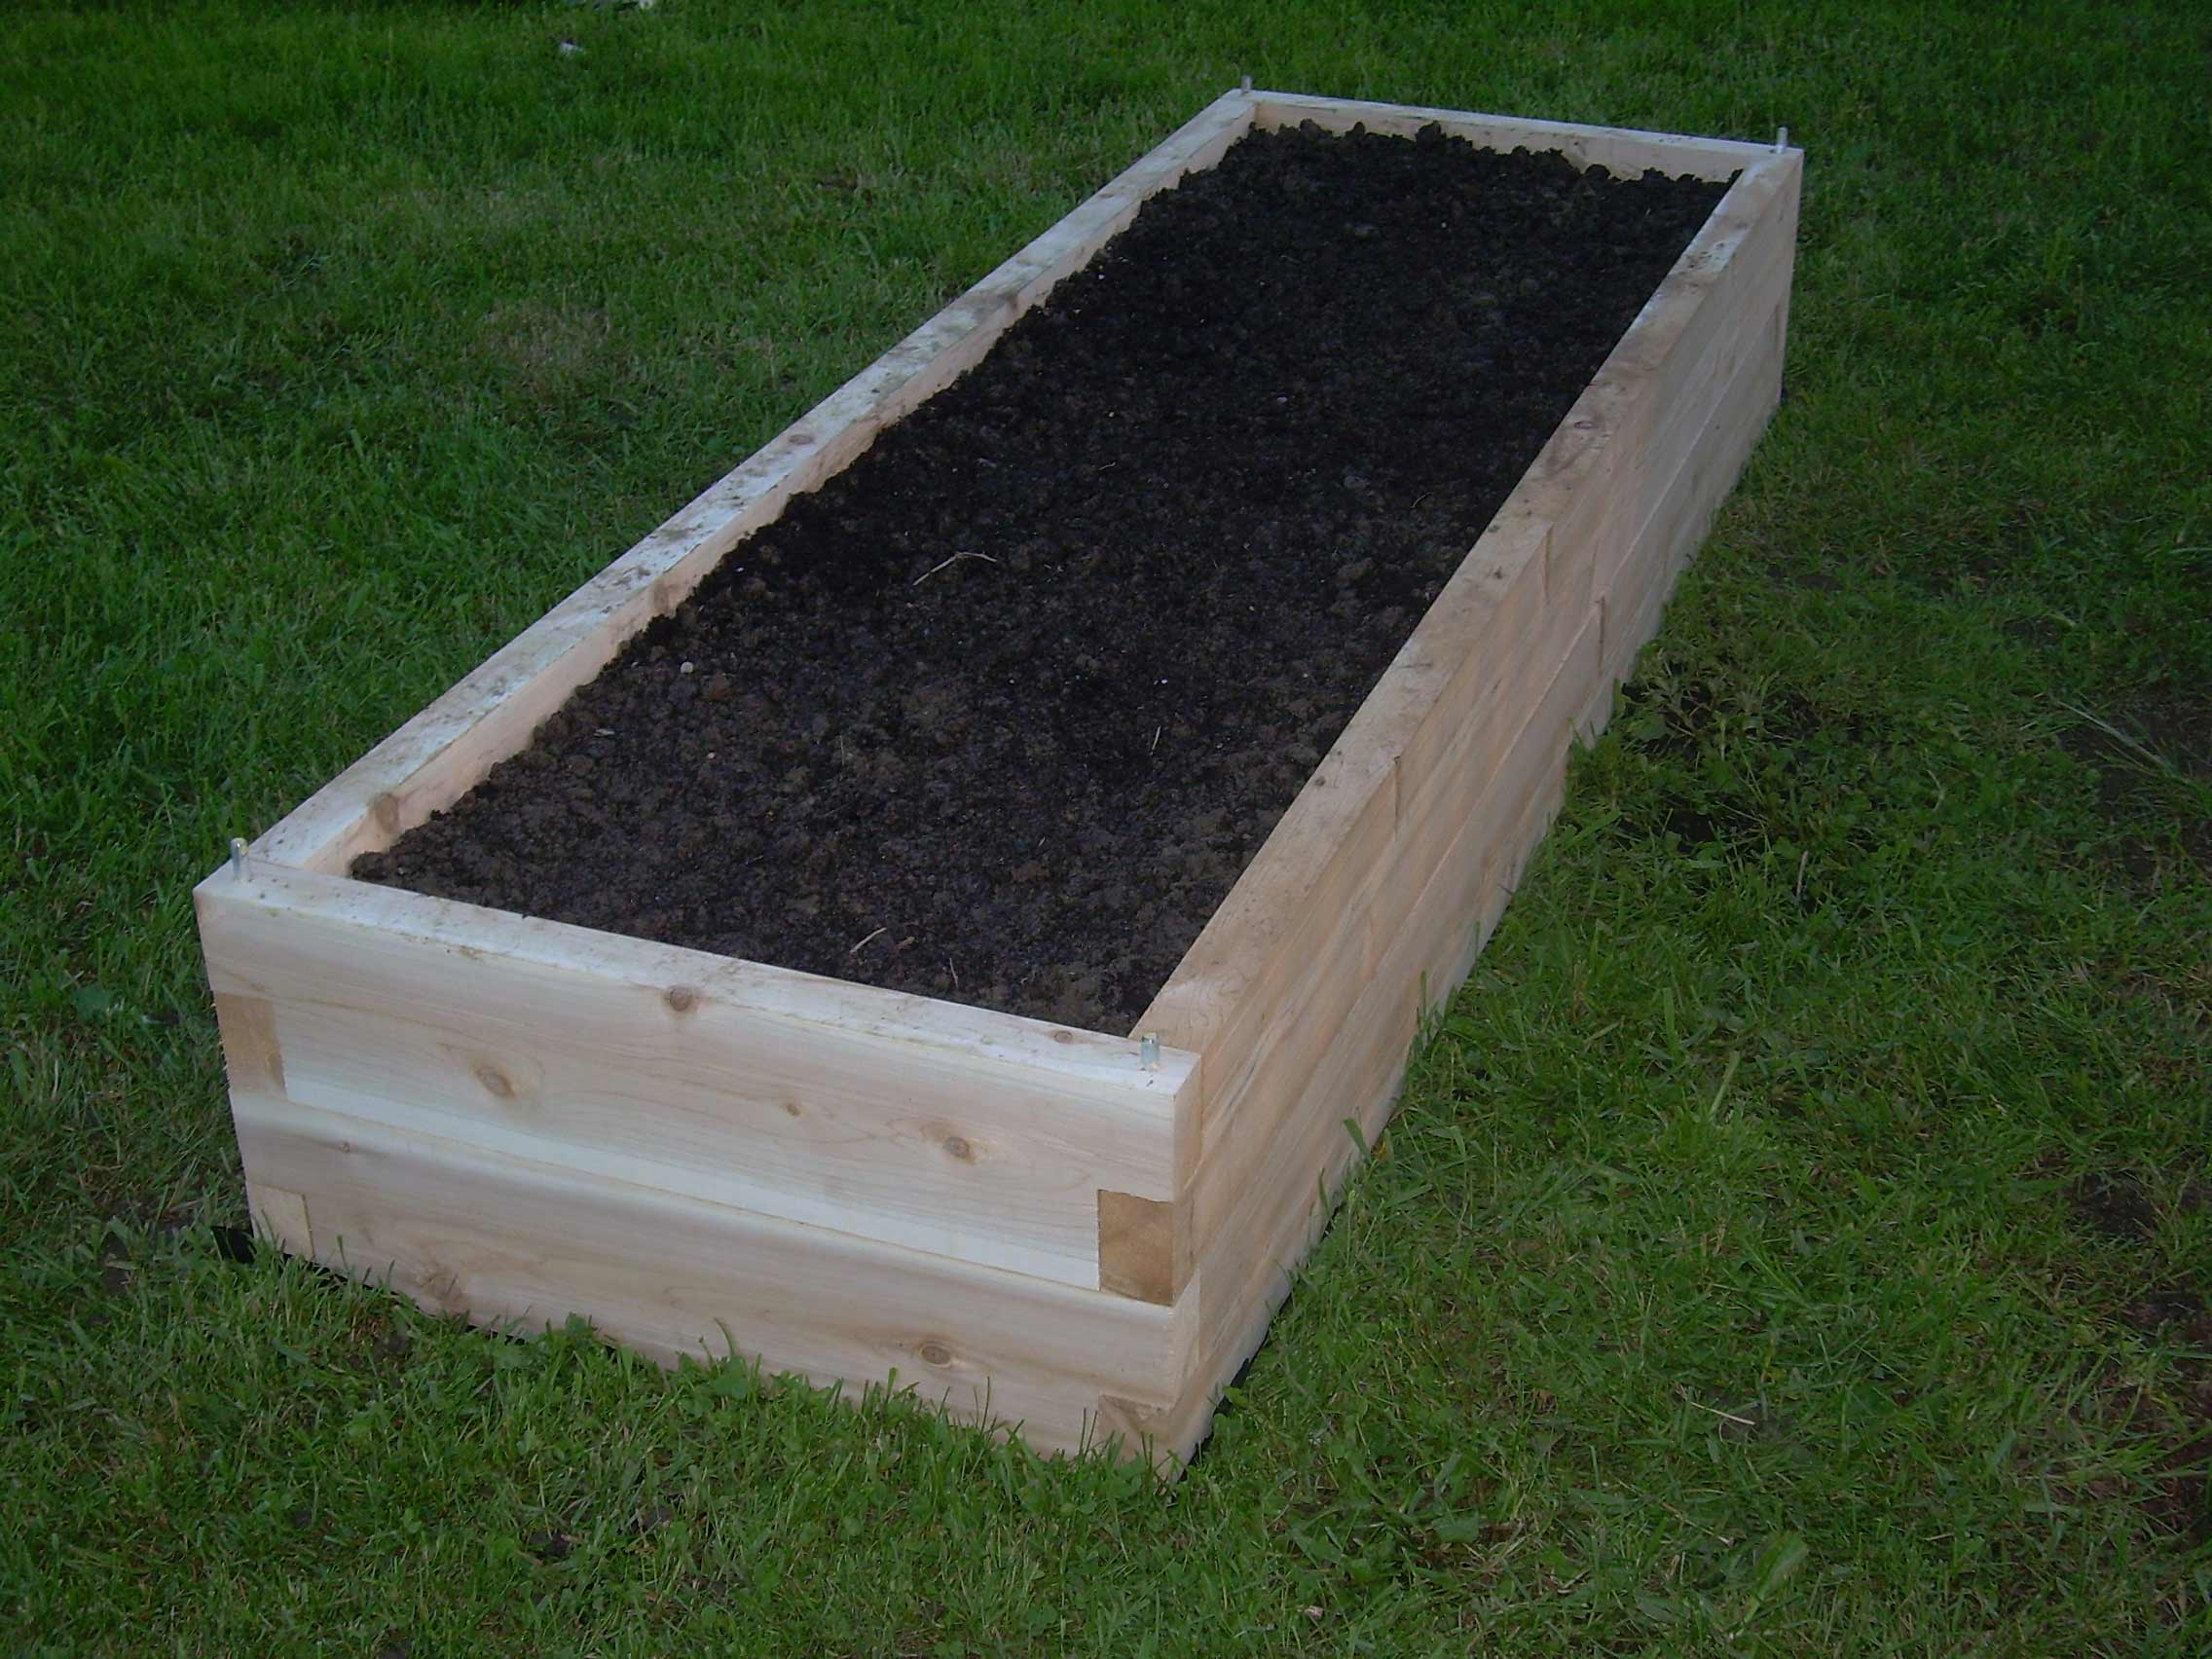 Raised bed garden kits home depot terrasse en bois Raised garden beds